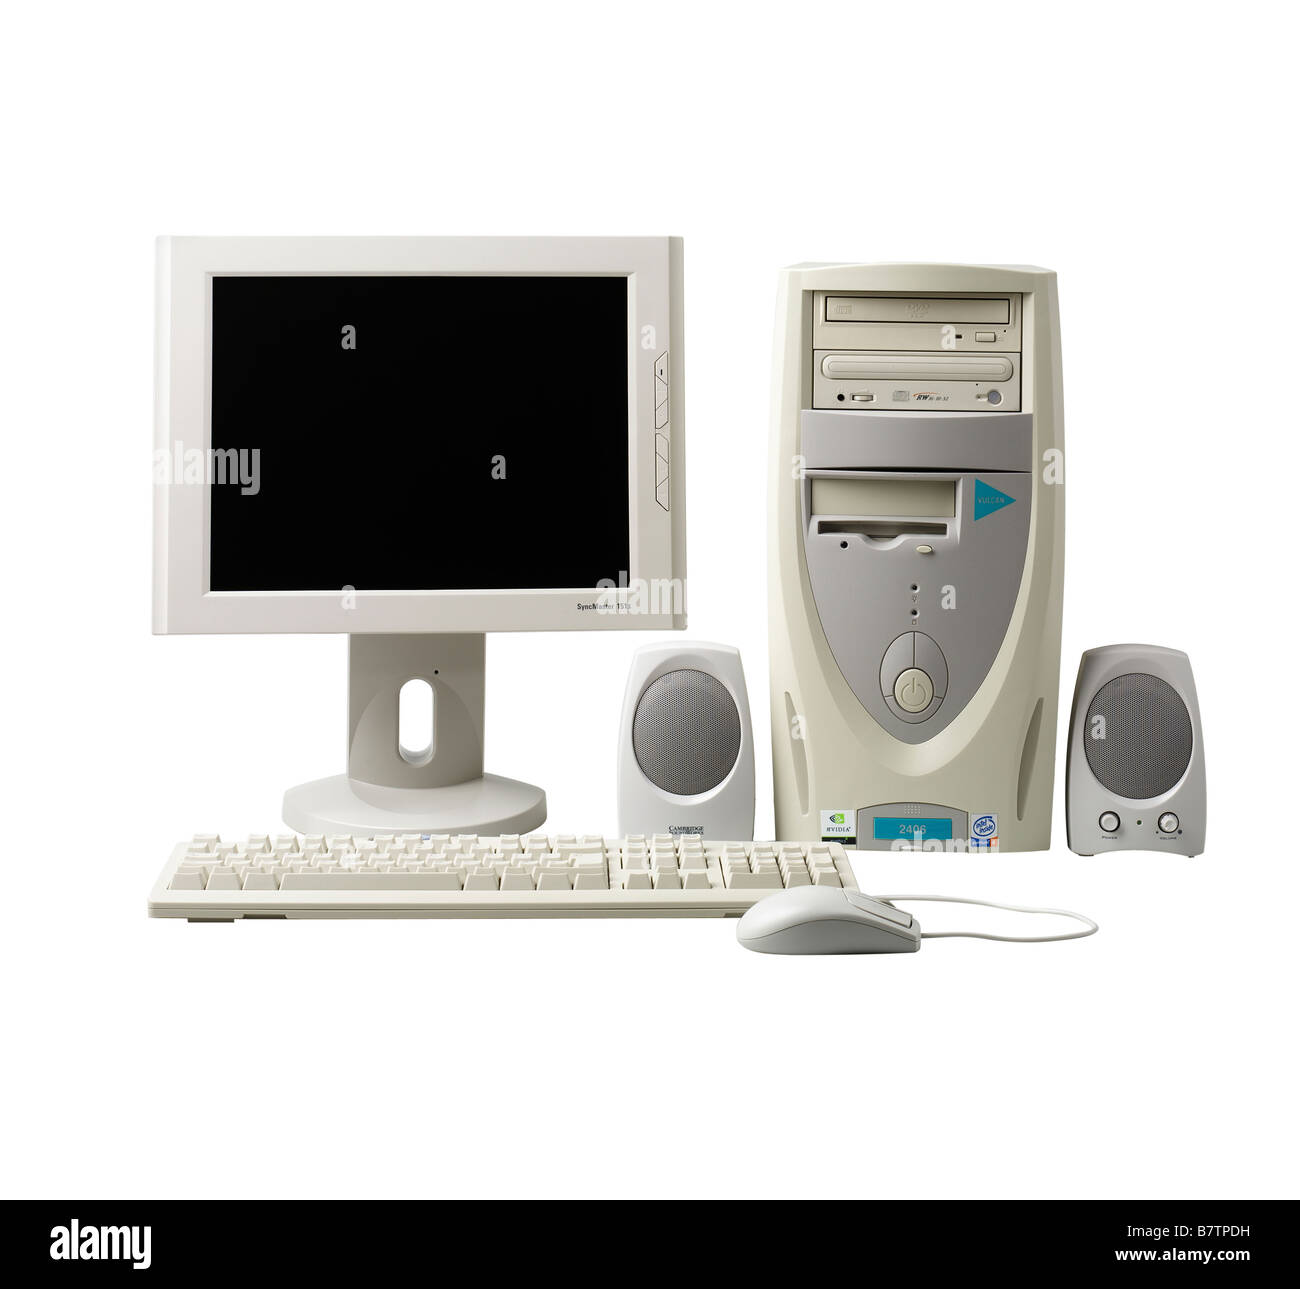 Computer tower screen and keyboard - Stock Image